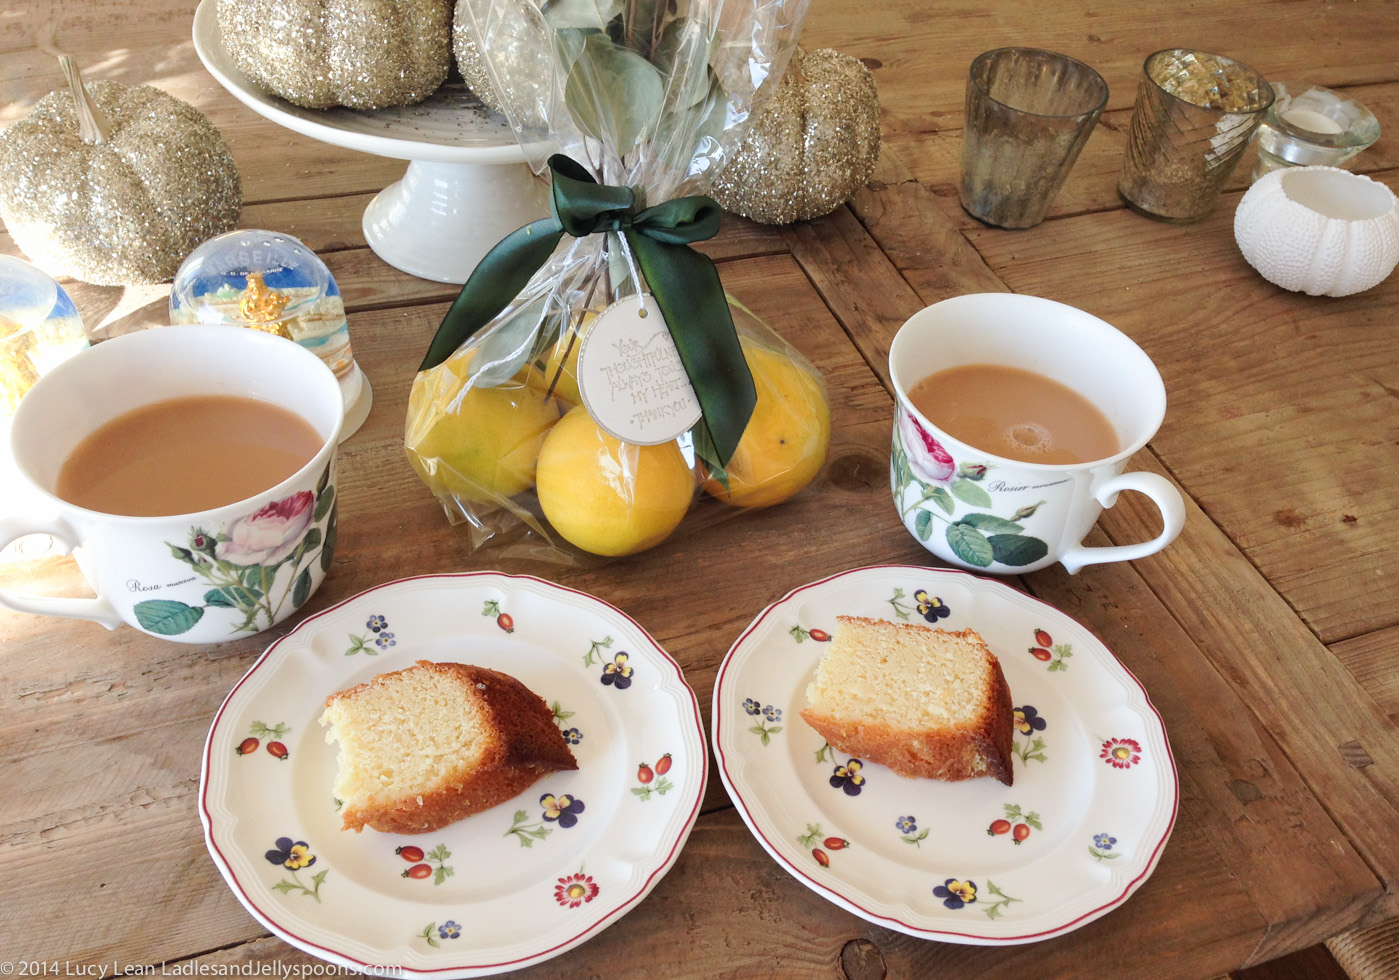 Lucy's Lemon Drizzle Cake – when life gives you lemons